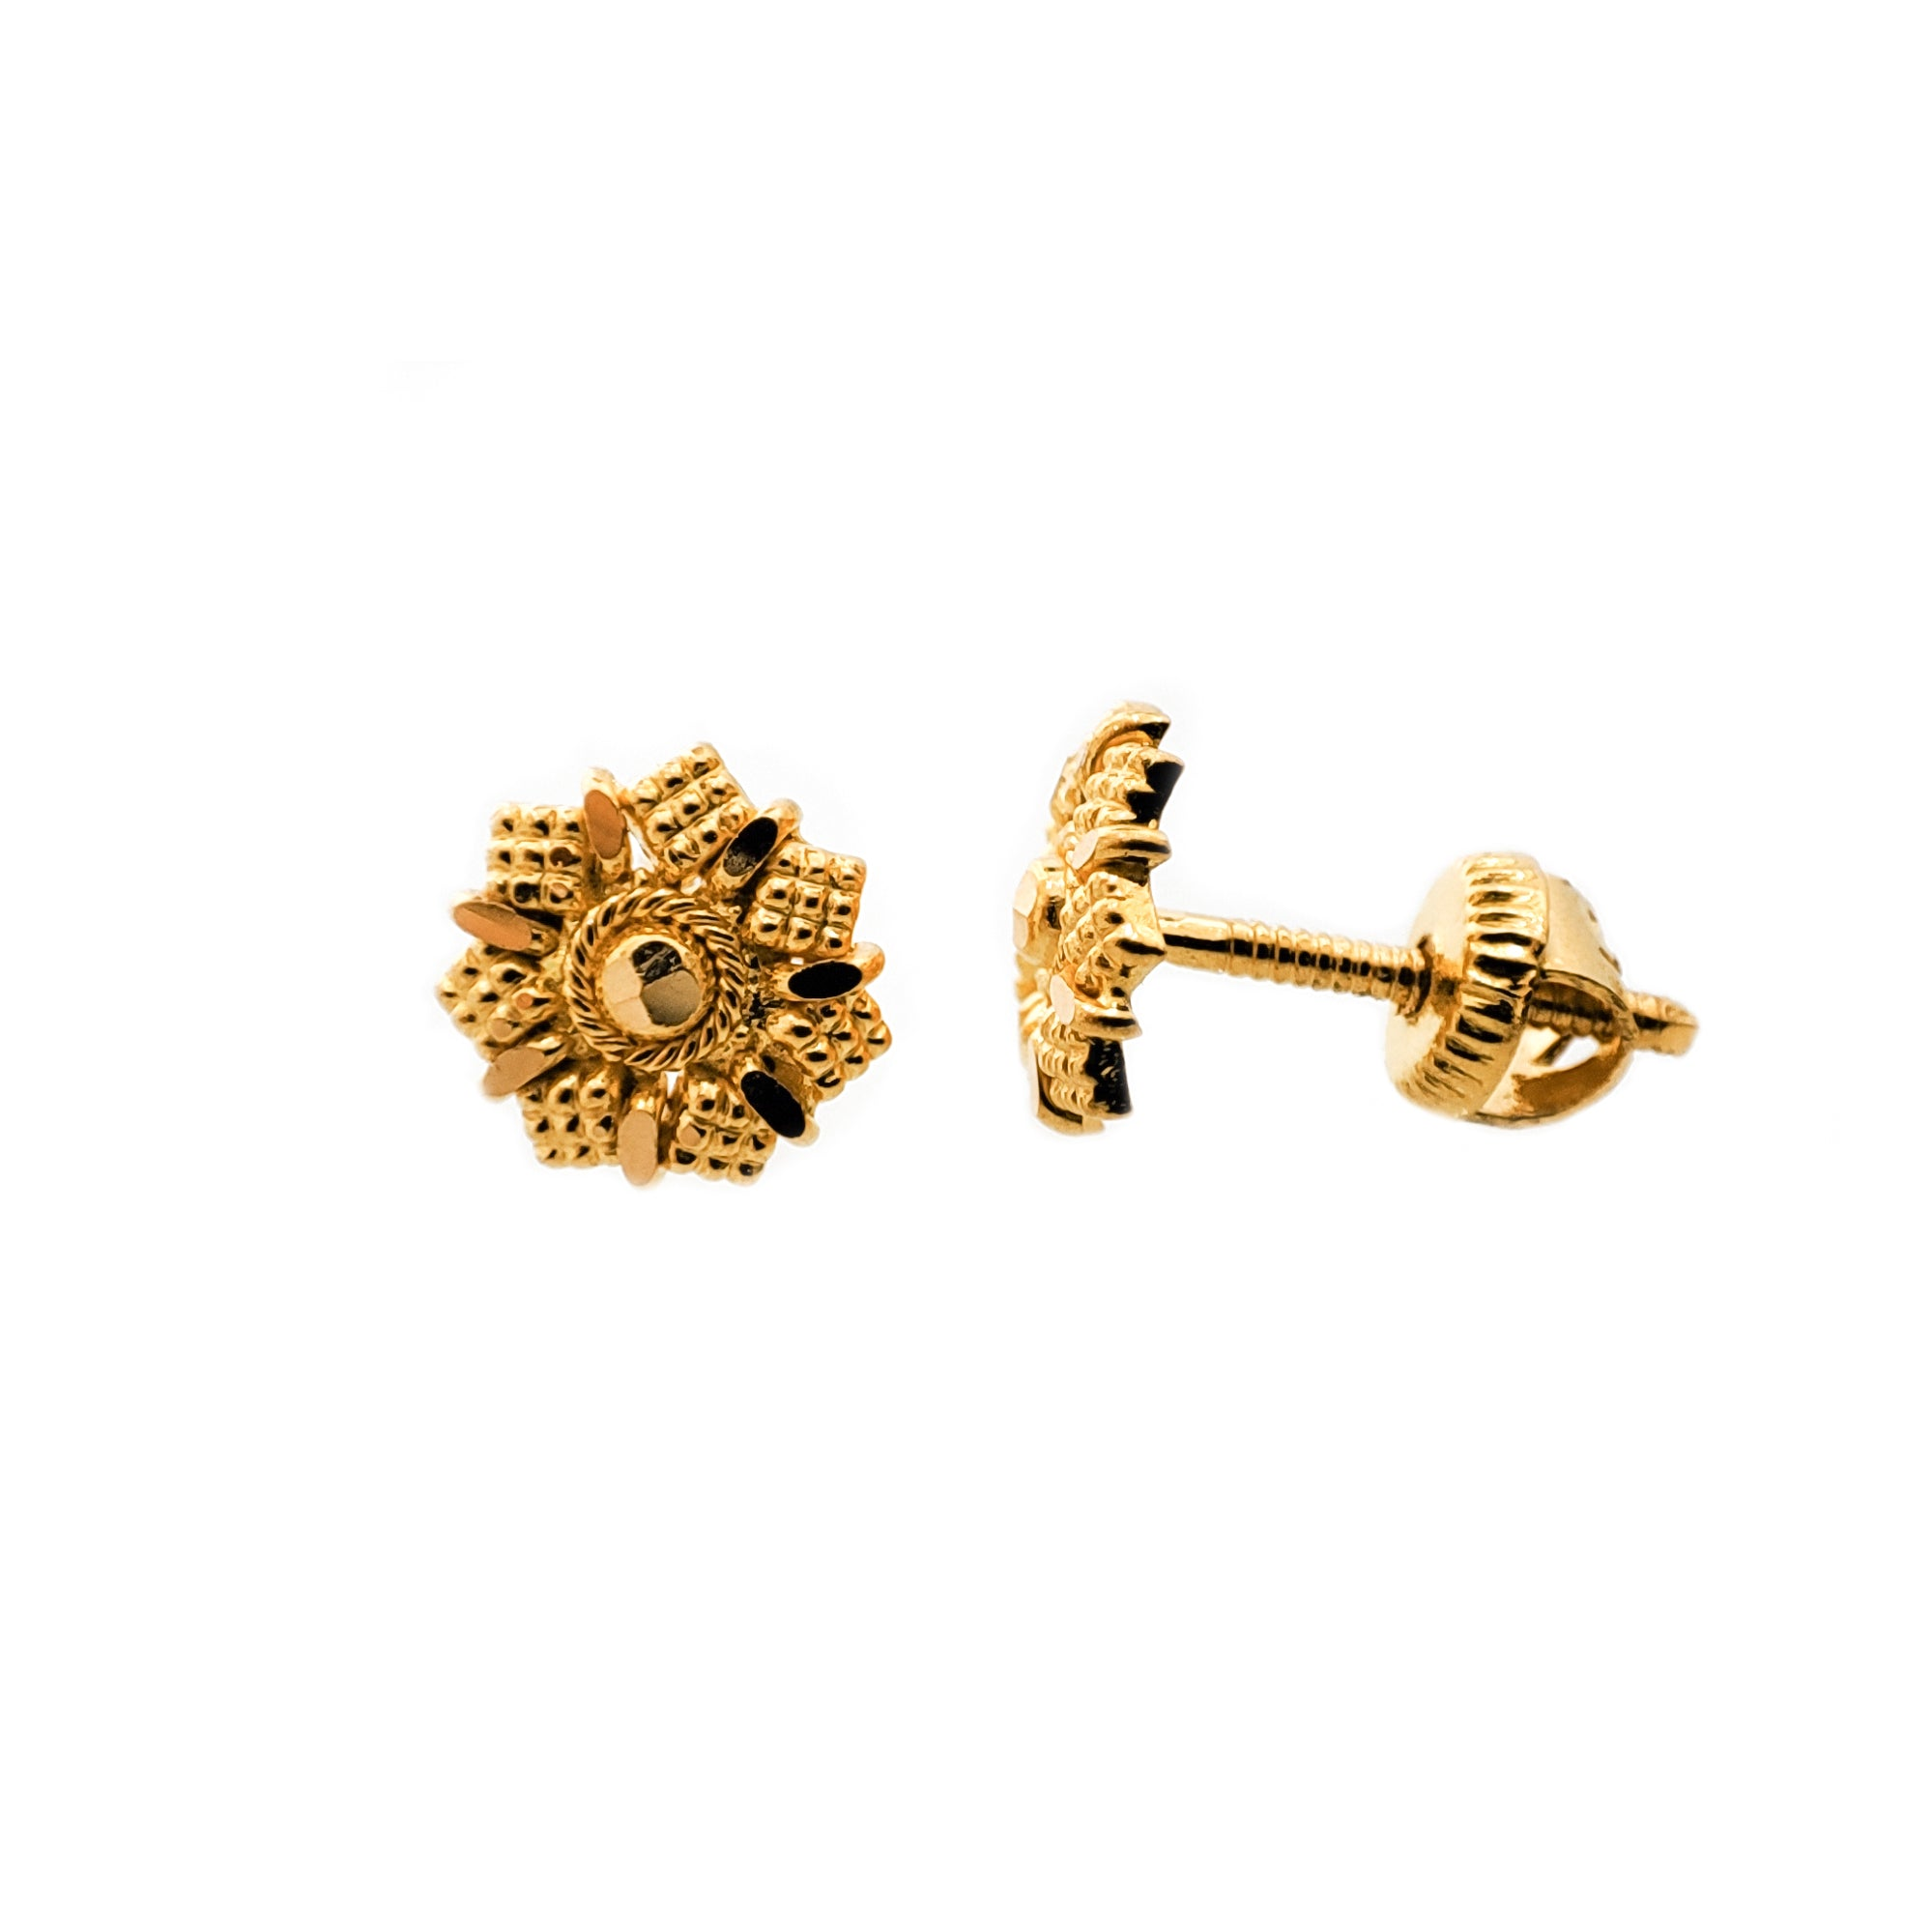 22ct Gold Diamond Cut Ear Studs (1.4g) E-8175